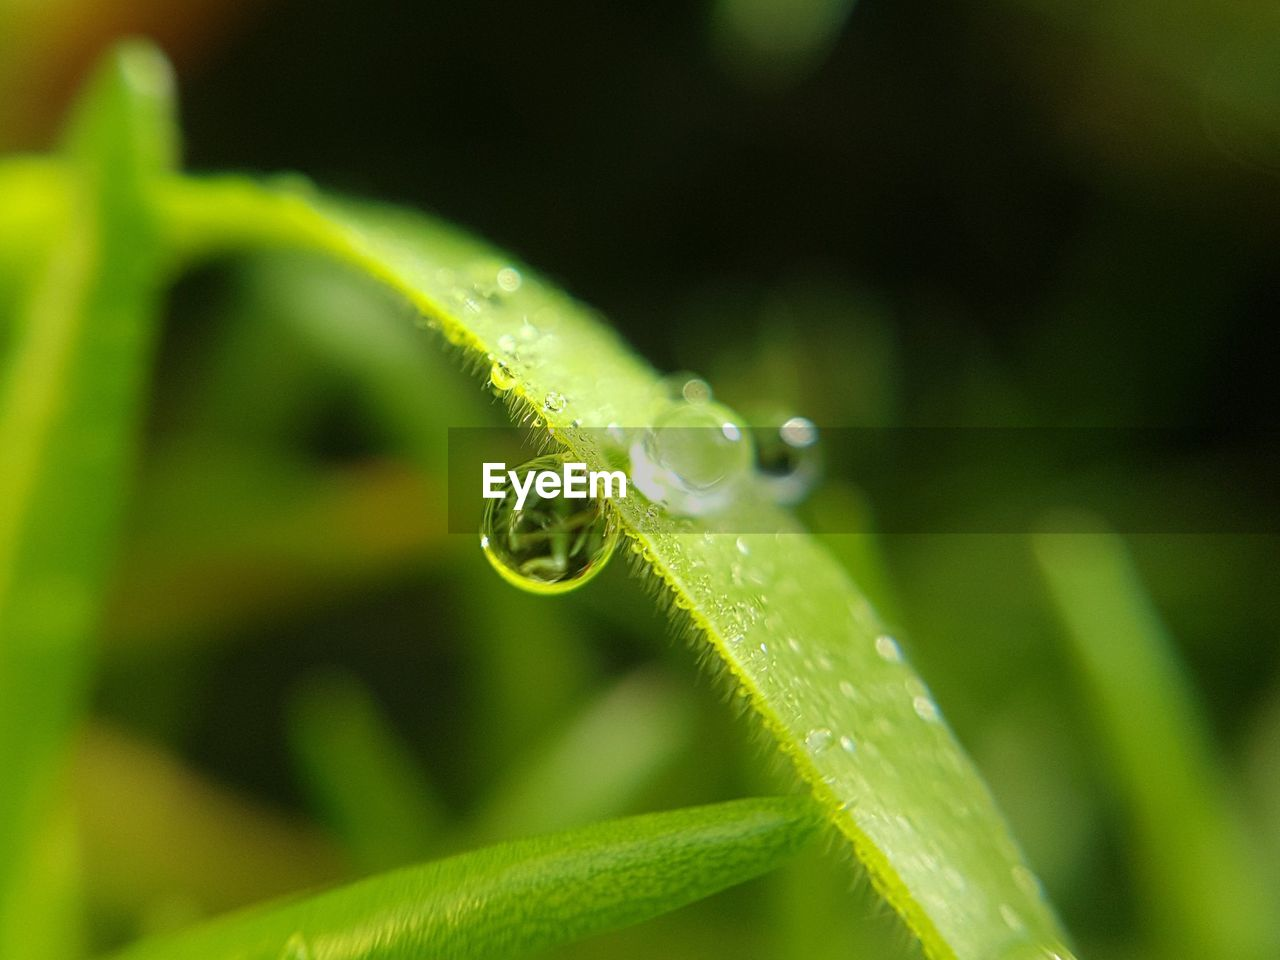 green color, close-up, growth, no people, nature, plant, selective focus, focus on foreground, leaf, freshness, day, plant part, animals in the wild, water, beauty in nature, one animal, animal wildlife, drop, invertebrate, outdoors, blade of grass